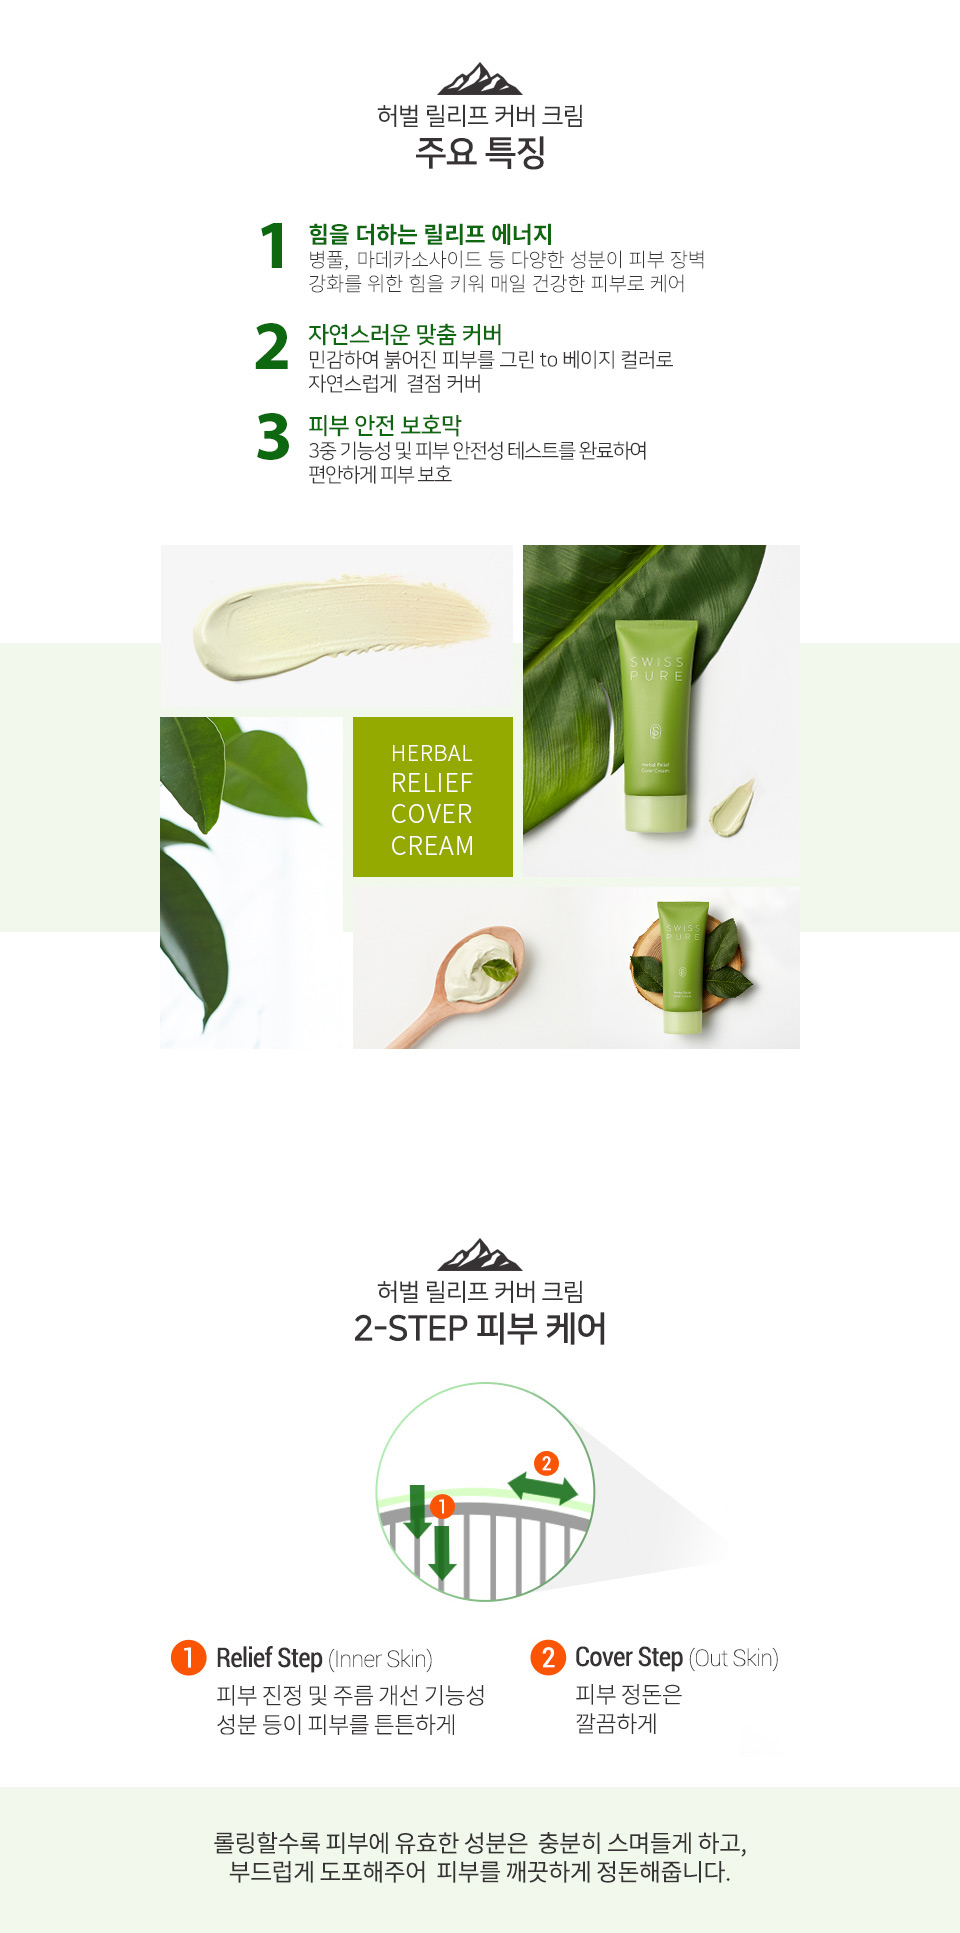 Herbal_Relief_Cover_Cream_Big_02.jpg